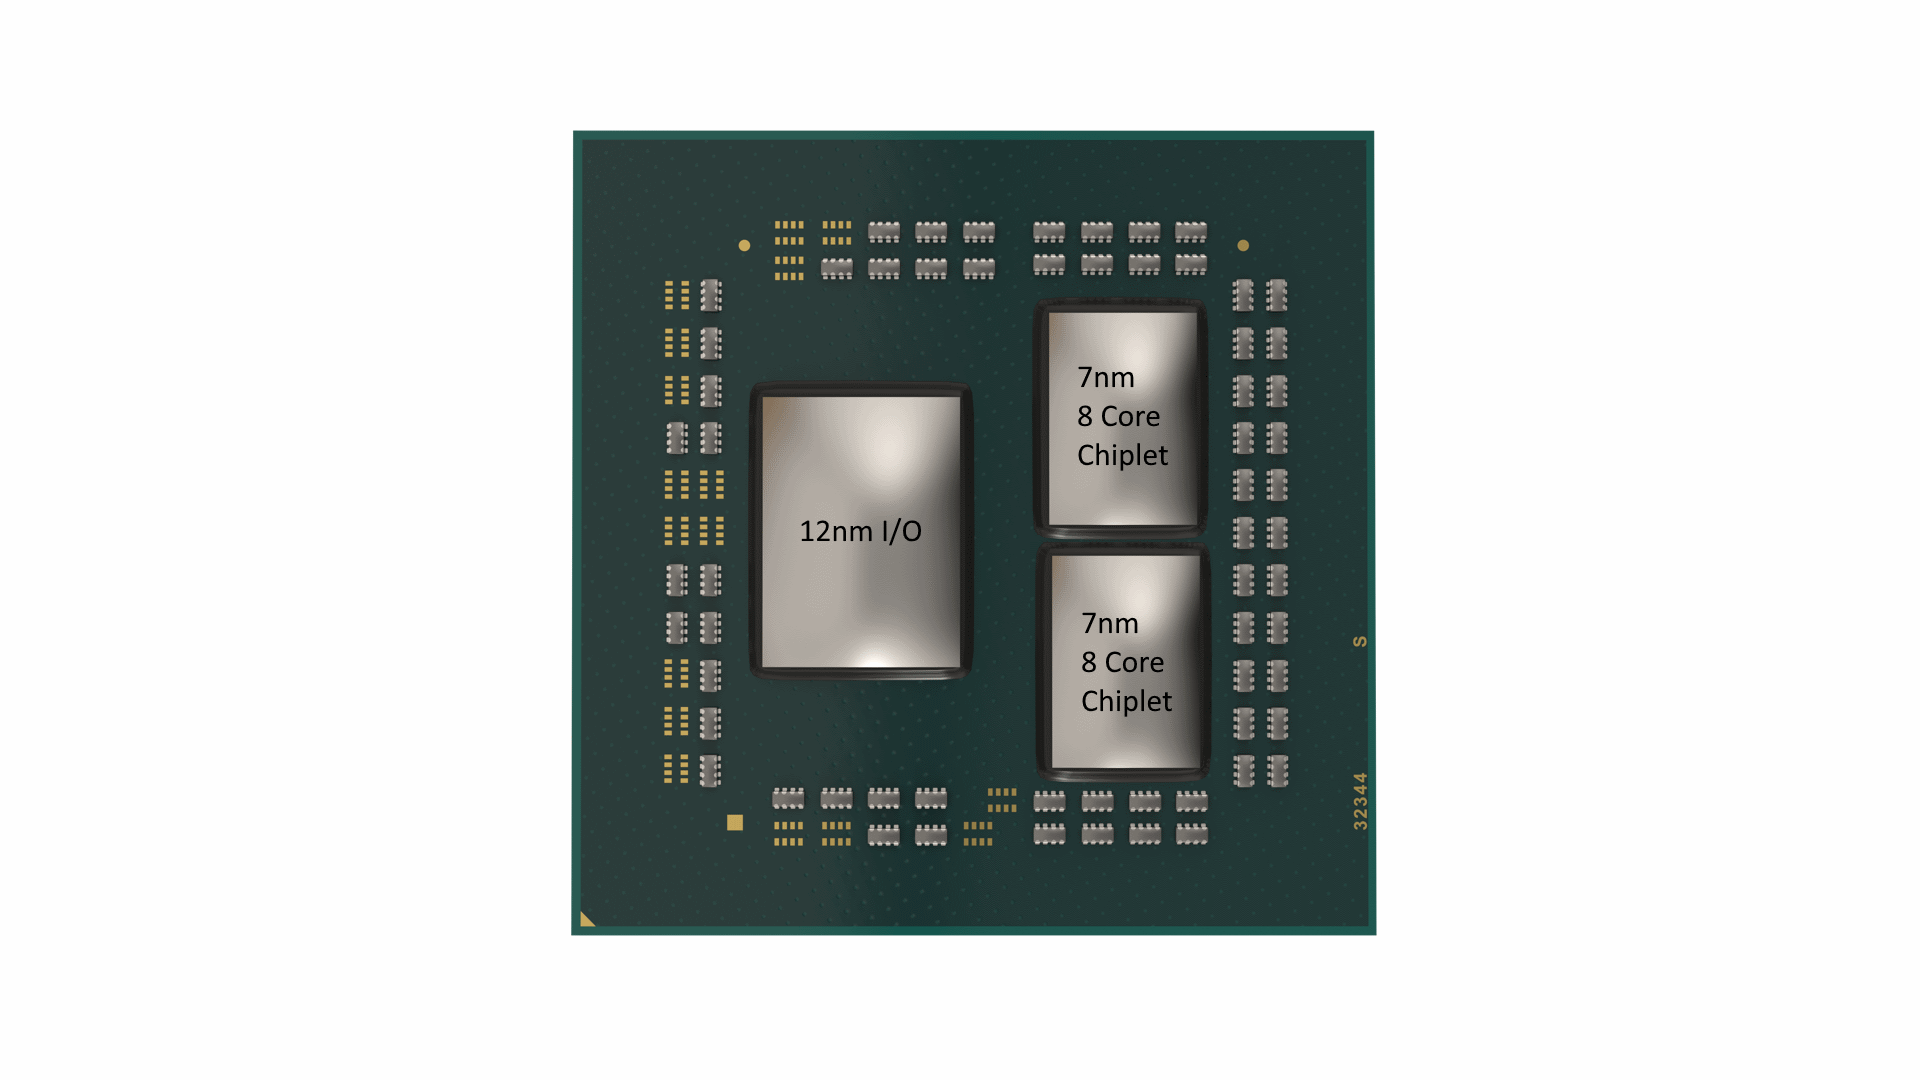 Ryzen 3000 Series CCX and Core Layout Quick Guide